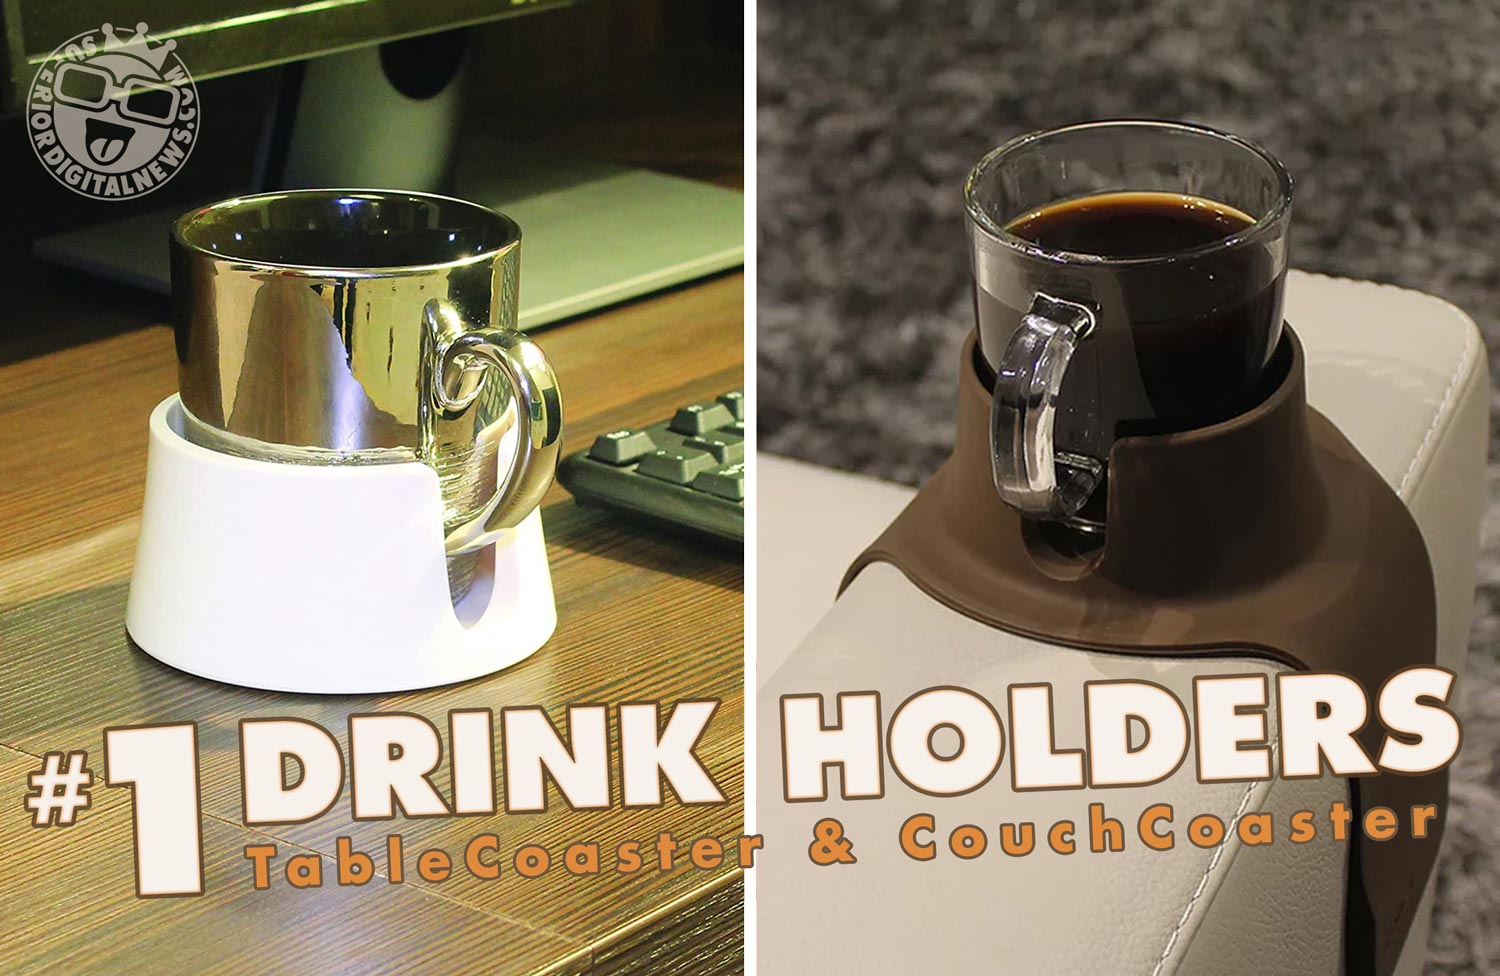 TableCoaster and CouchCoaster | #1 Anti-Spill Drink Holders